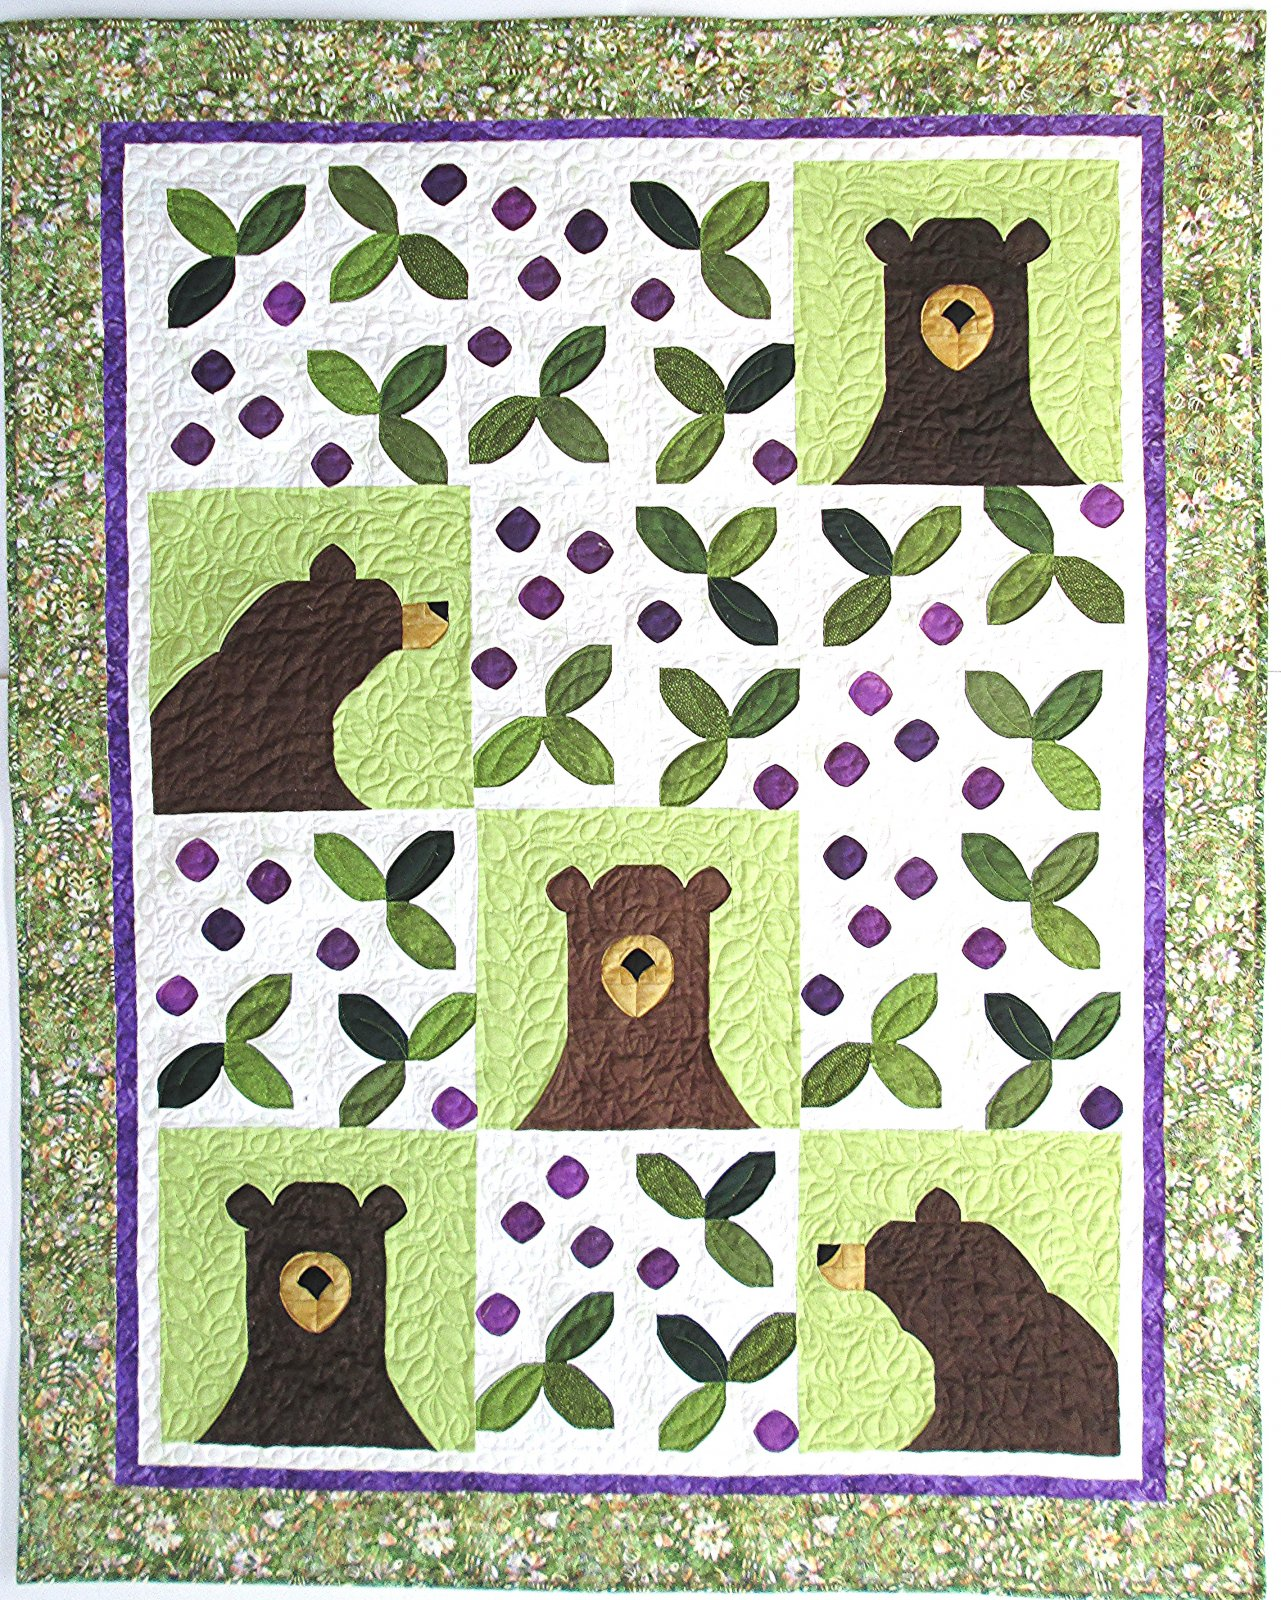 Bear-y Patches Quilt Kit